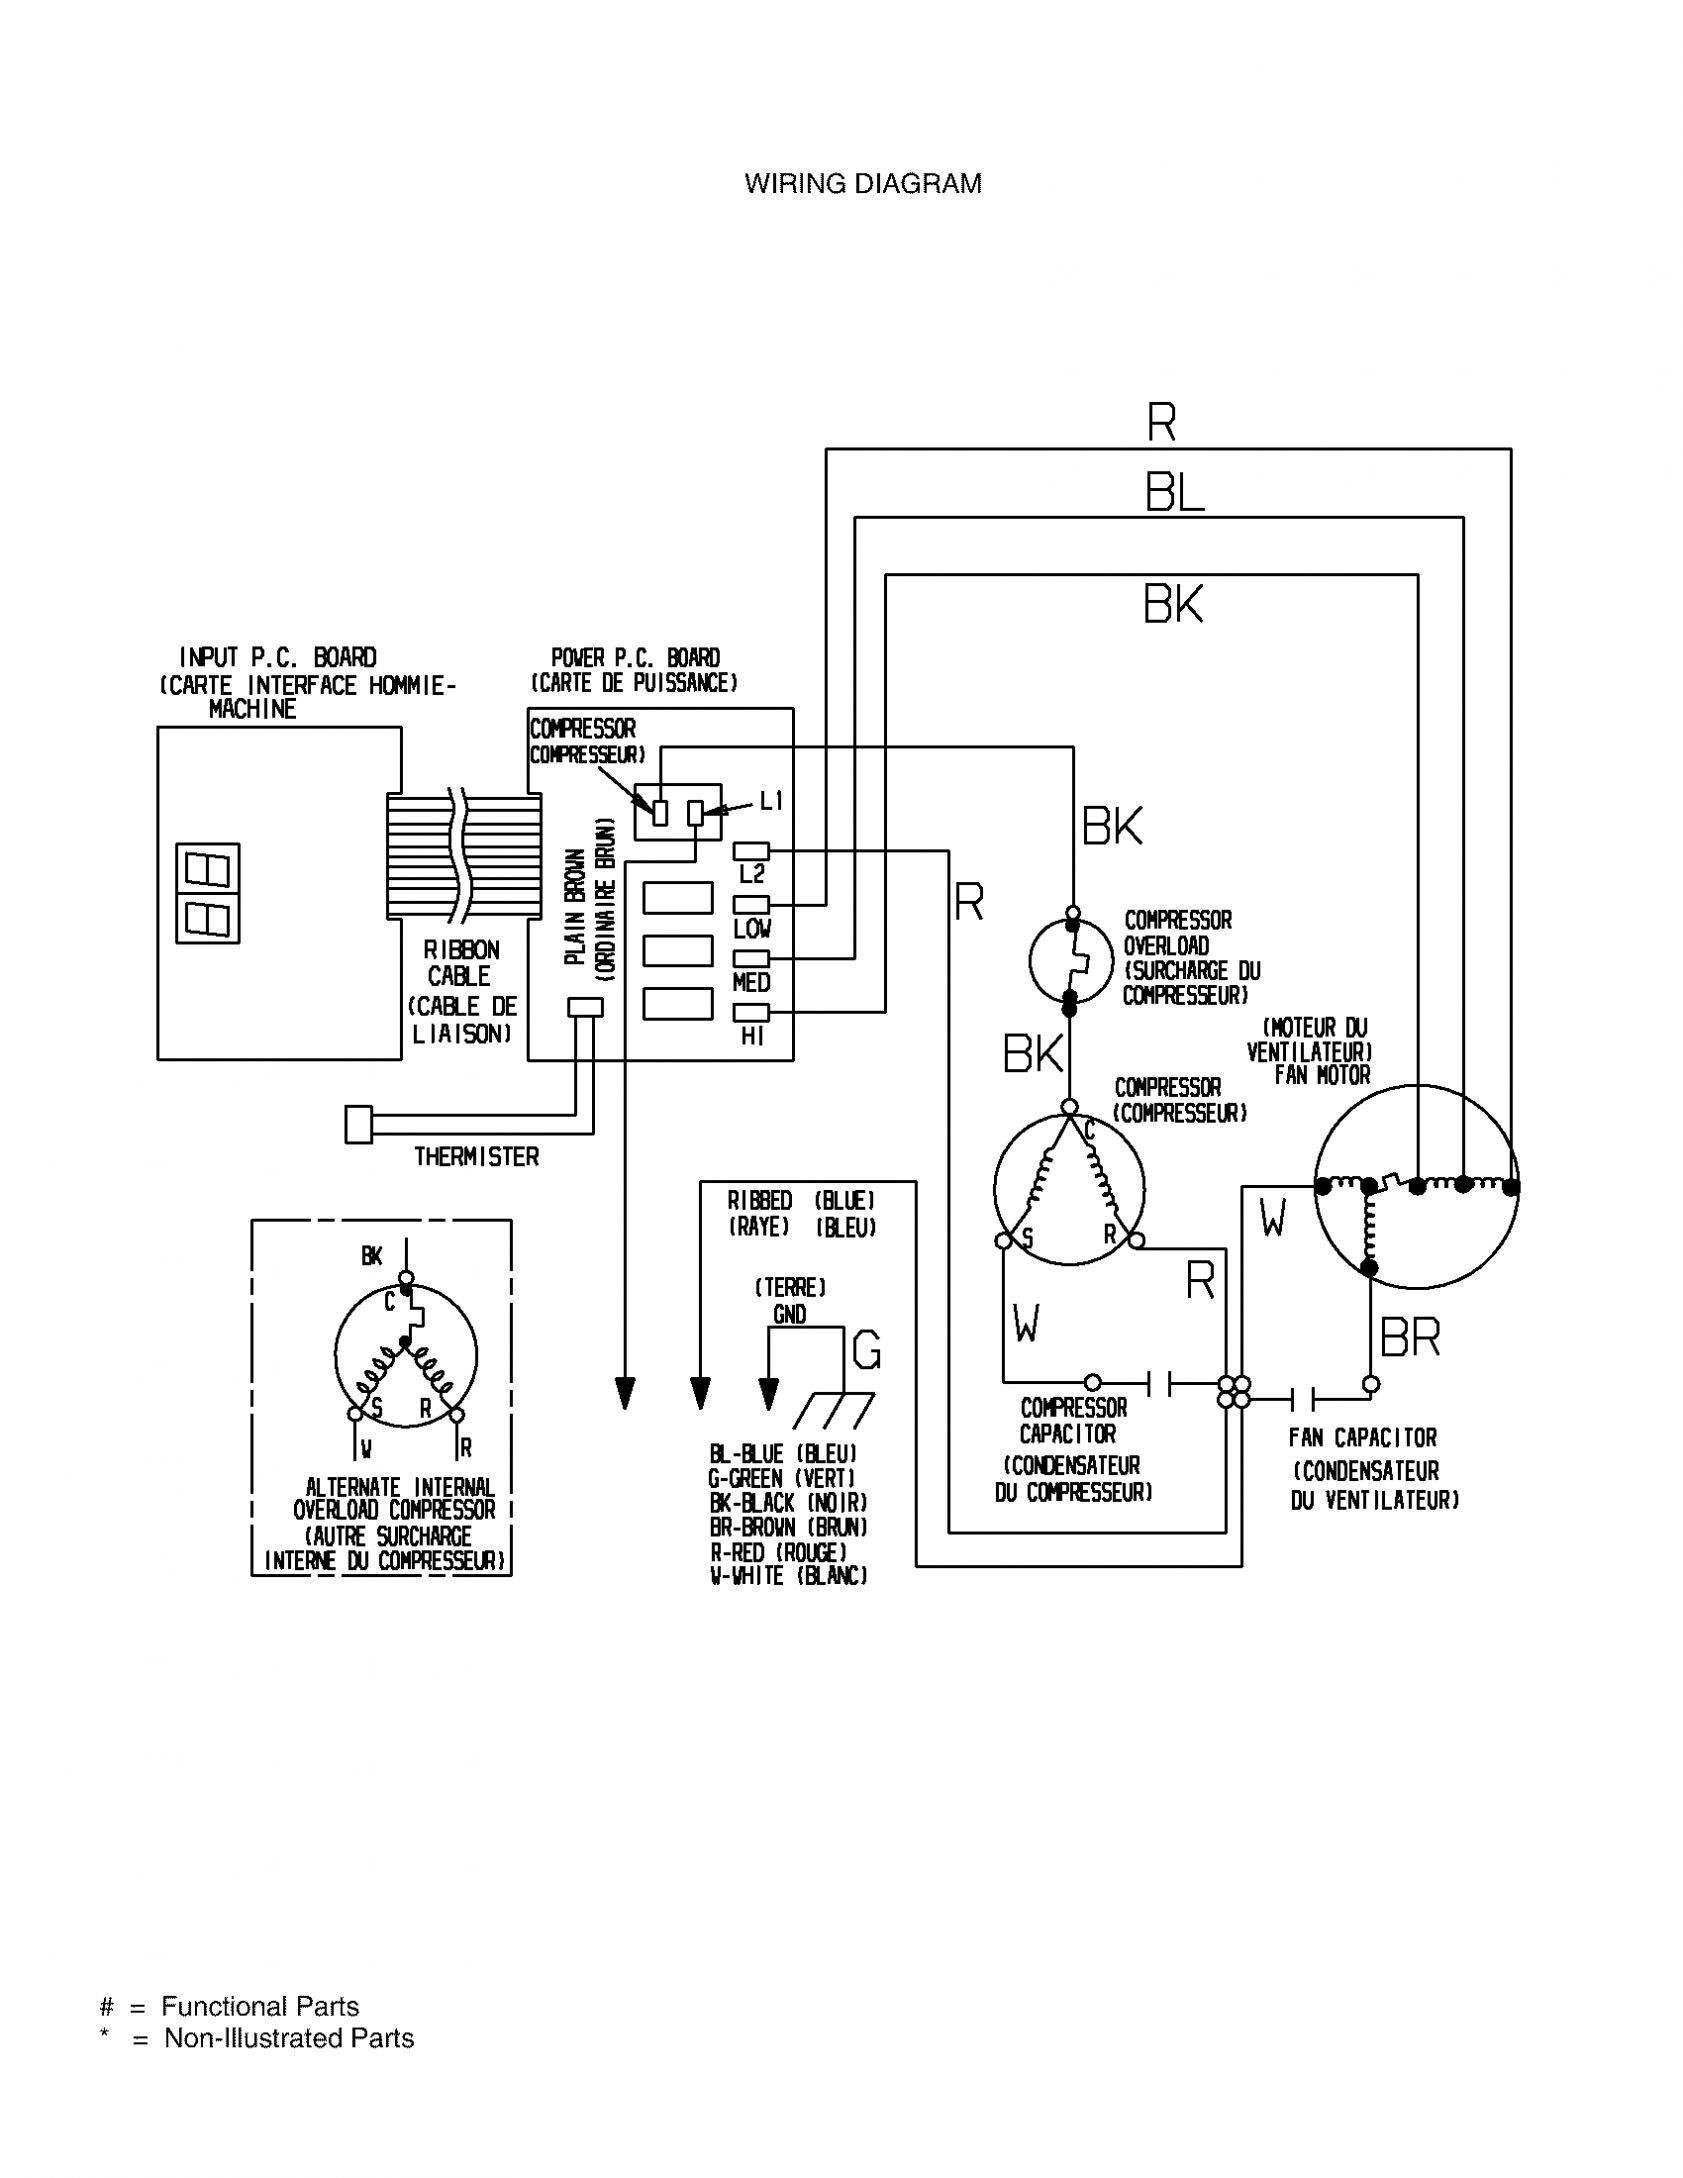 Wiring Diagram Ac Lg New Wiring Diagram for Air Conditioning Unit Best Mcquay Air Conditioner